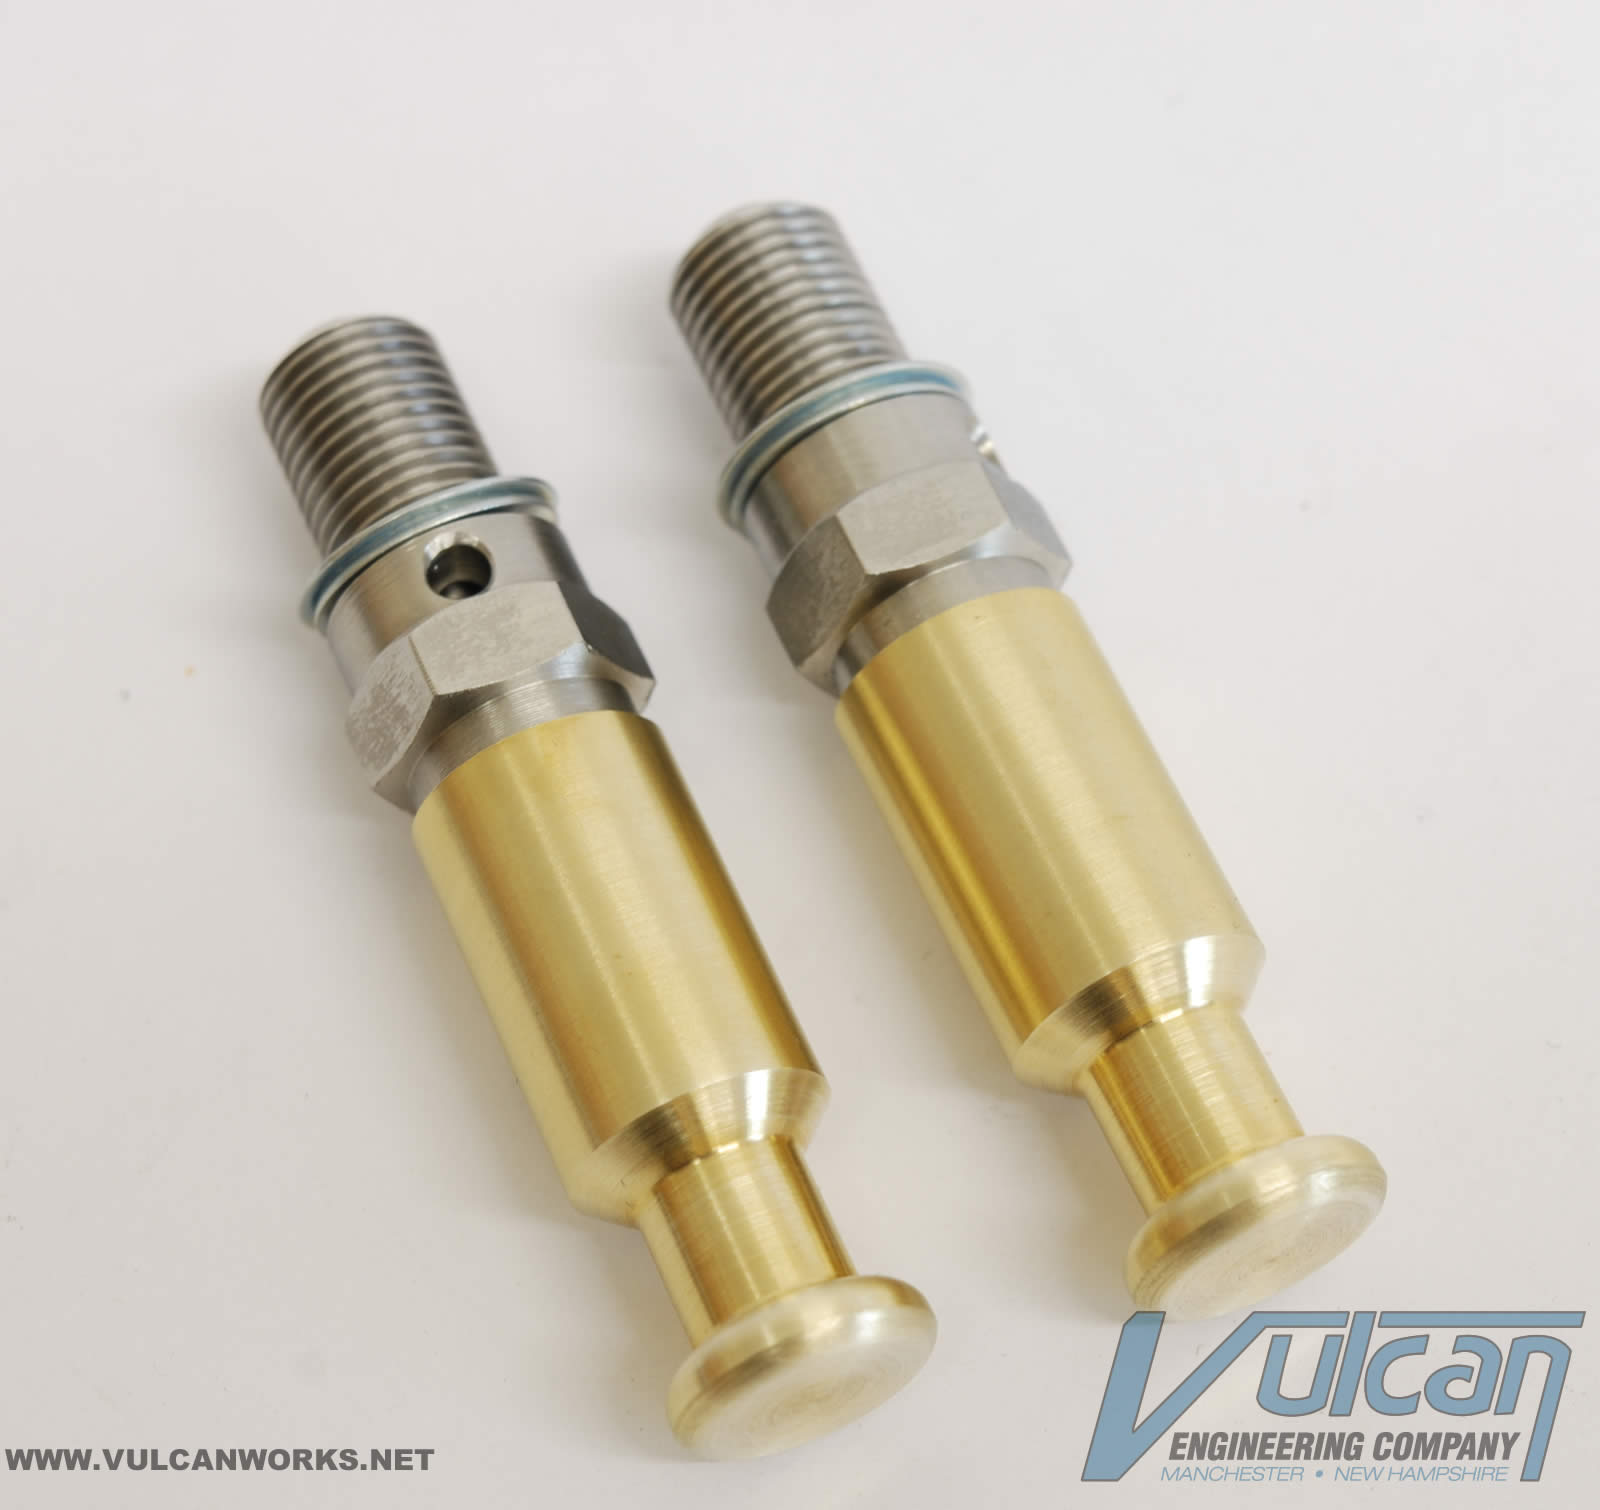 10mm Compression Release Sets- Brass Cap